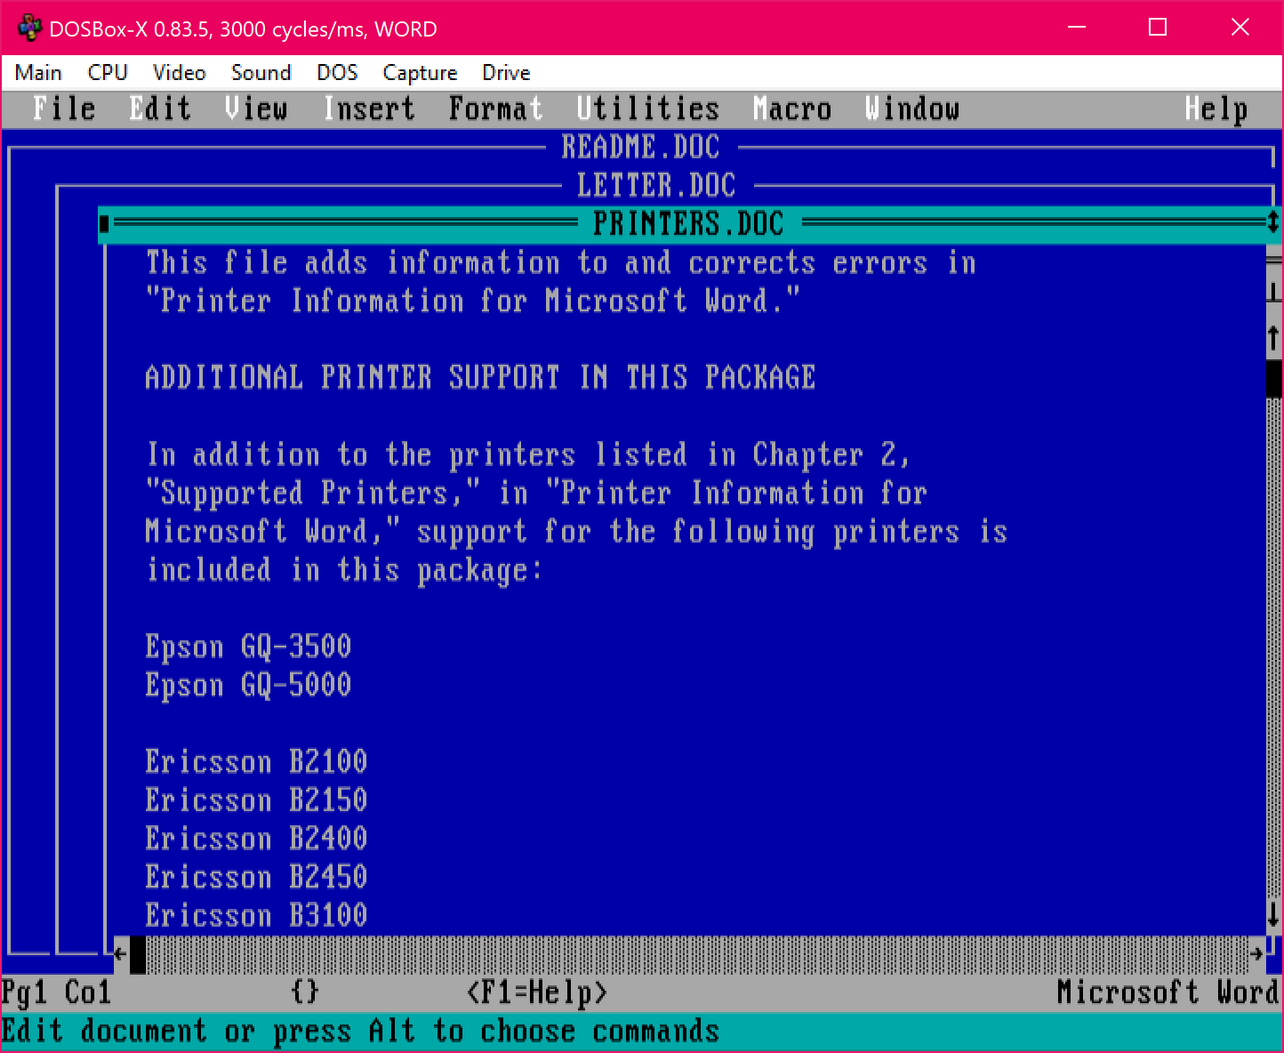 Word for DOS running in DOSBox-X